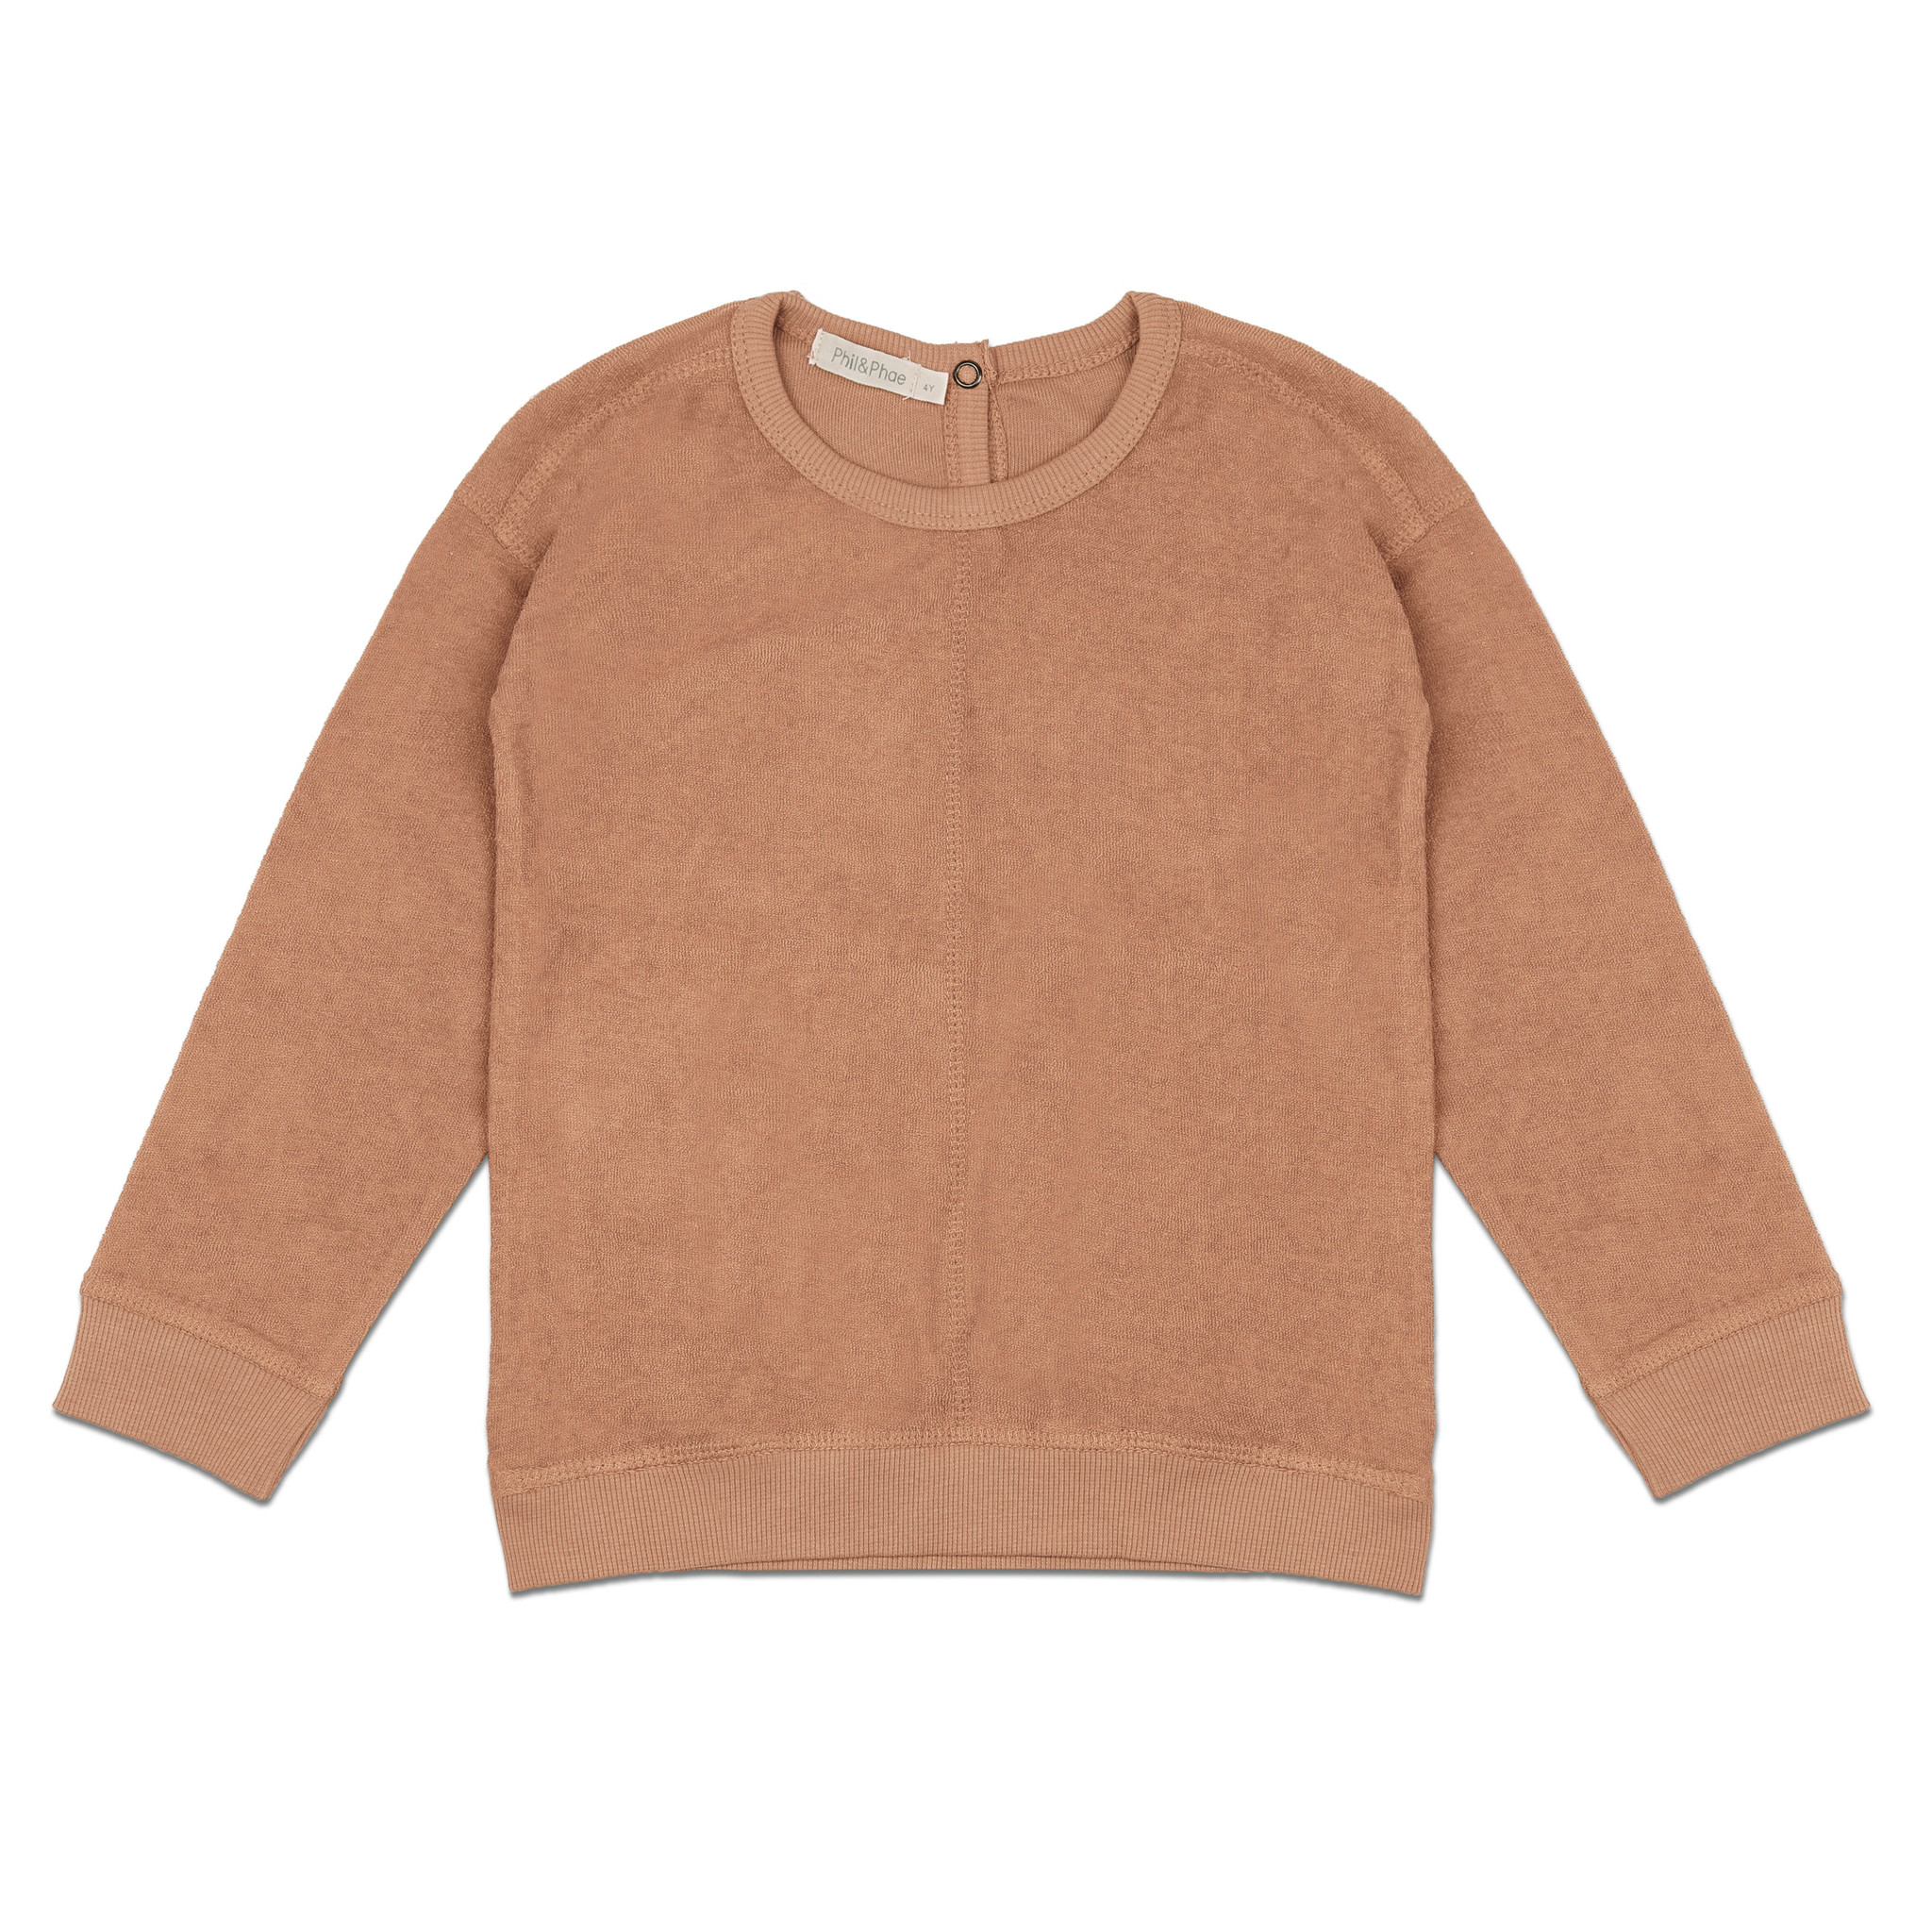 Frotté sweater - warm biscuit-1